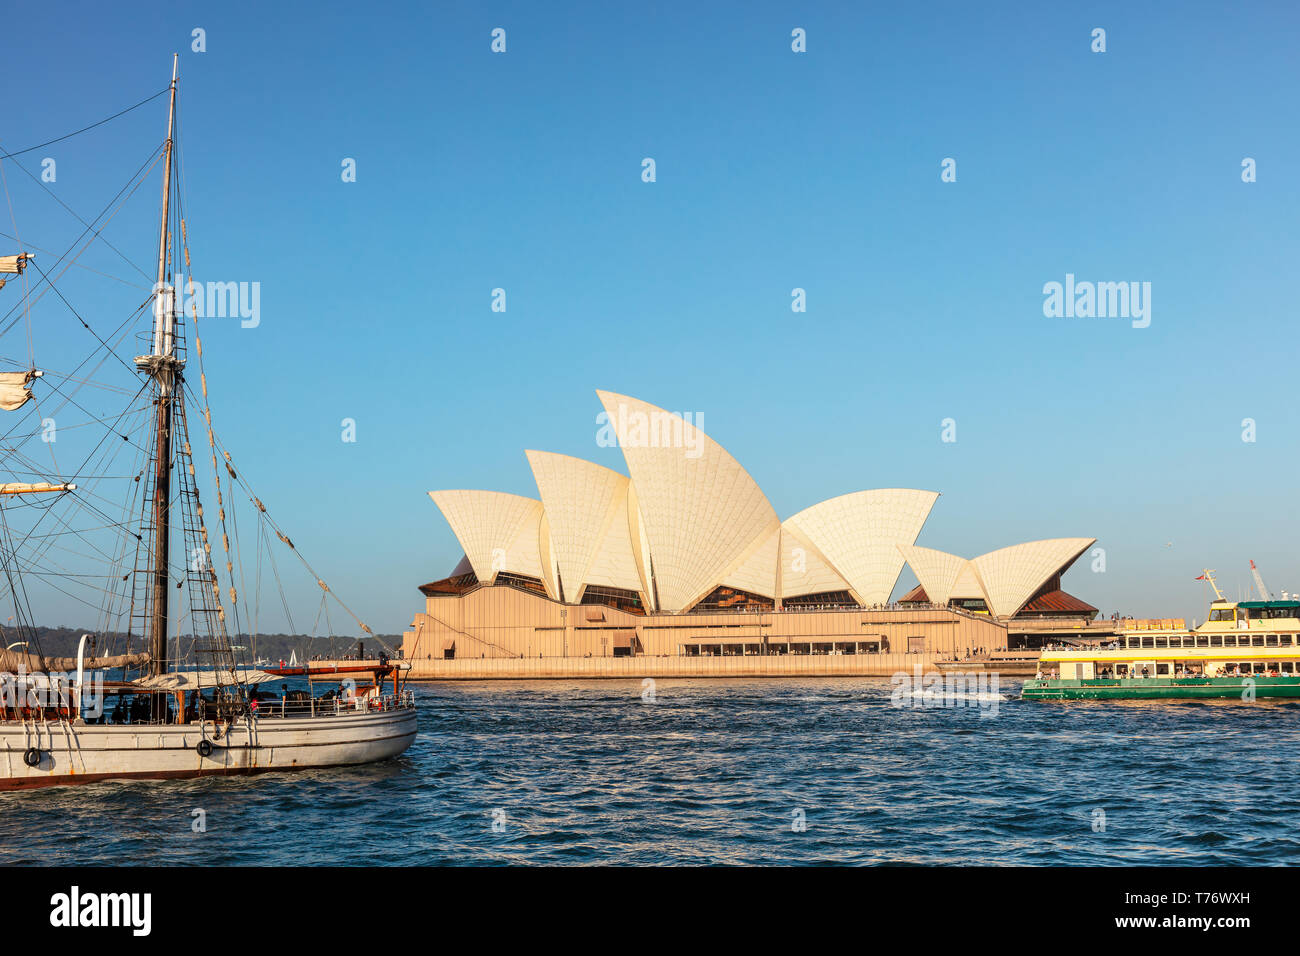 Circular Quay in Sydney is the city's main ferry terminus - situated in the very heart of Sydney Cove. - Stock Image